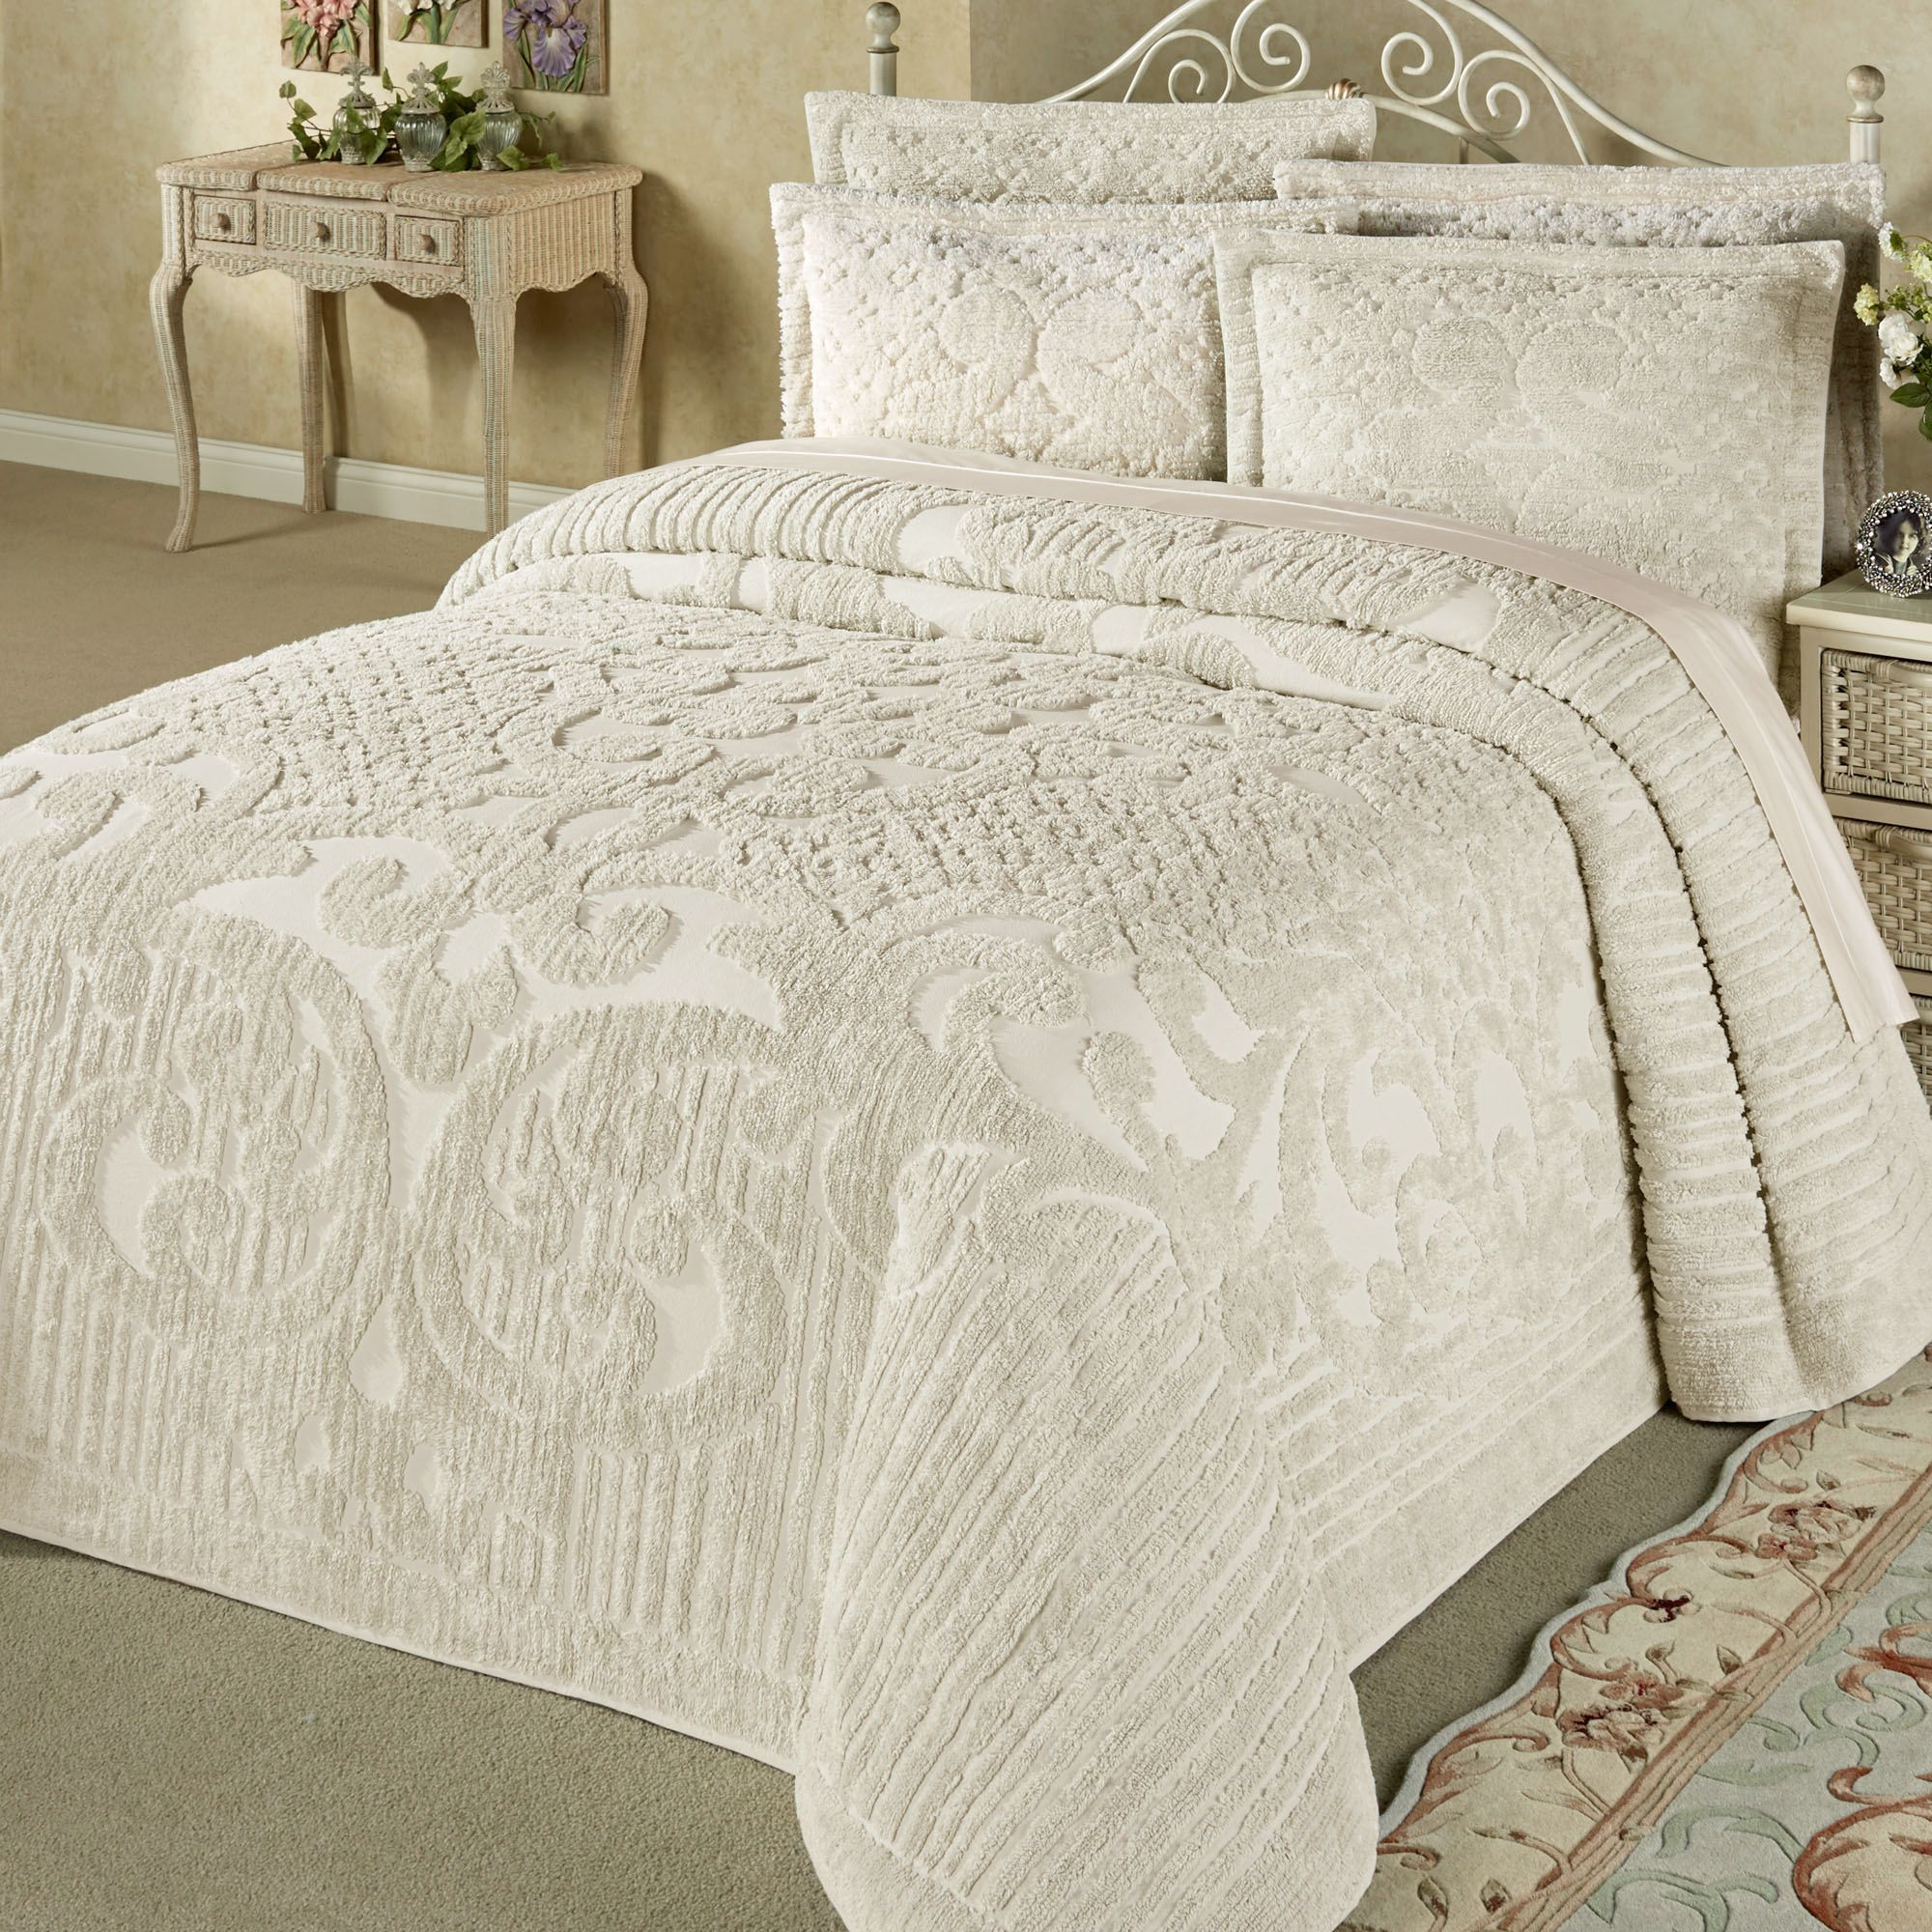 duvet bloom set bedspreads cottage country curtain full vintage the comforter curtains ruffle cover i pin leave would frame from bed love